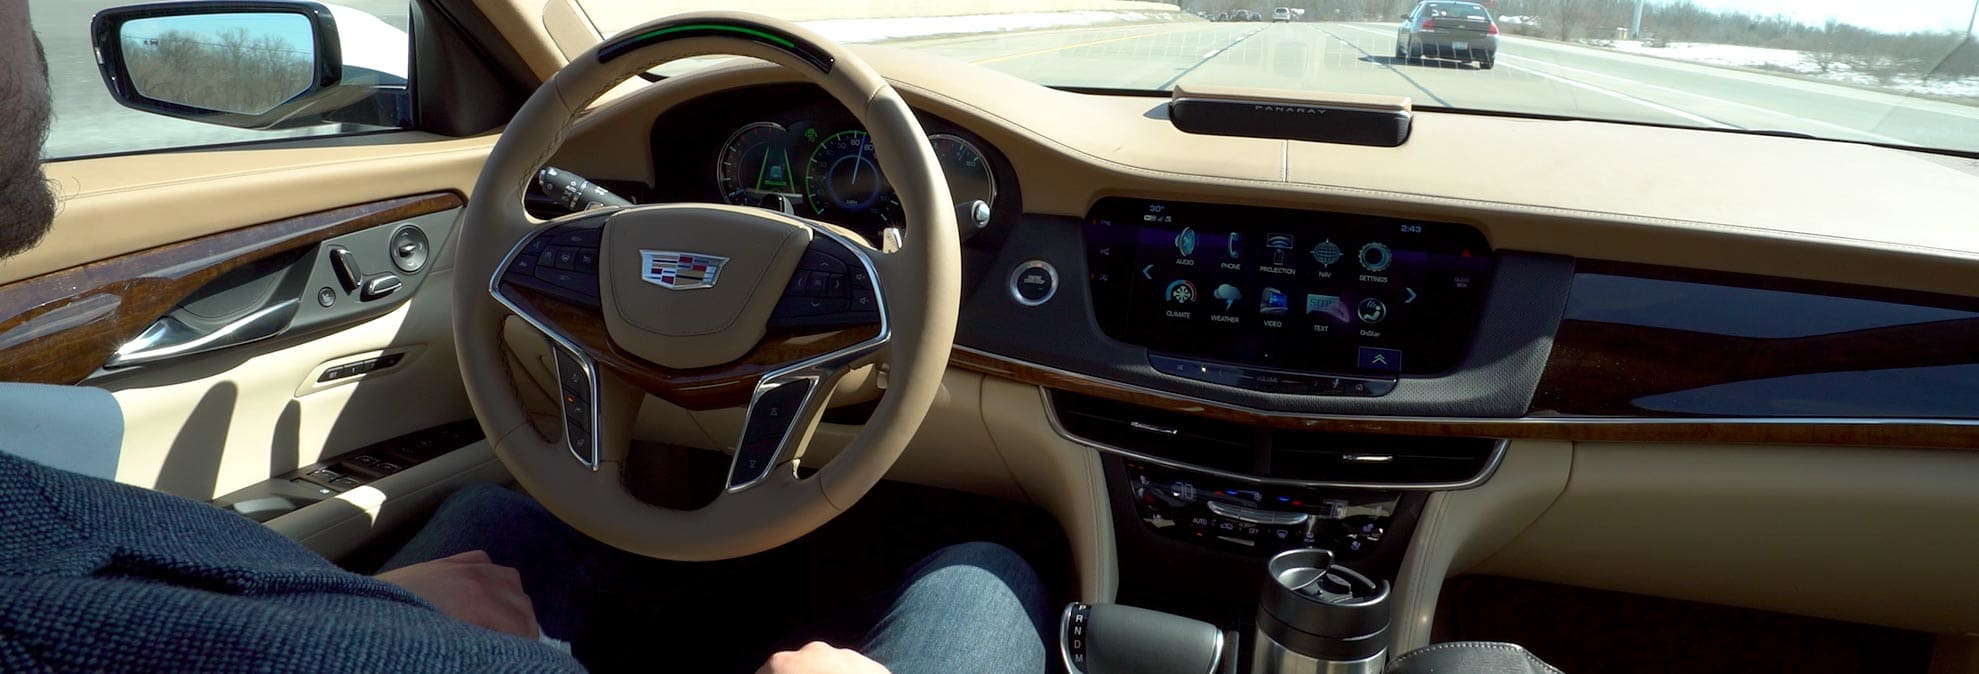 Super Cruise Gm S Self Driving Cars Technology